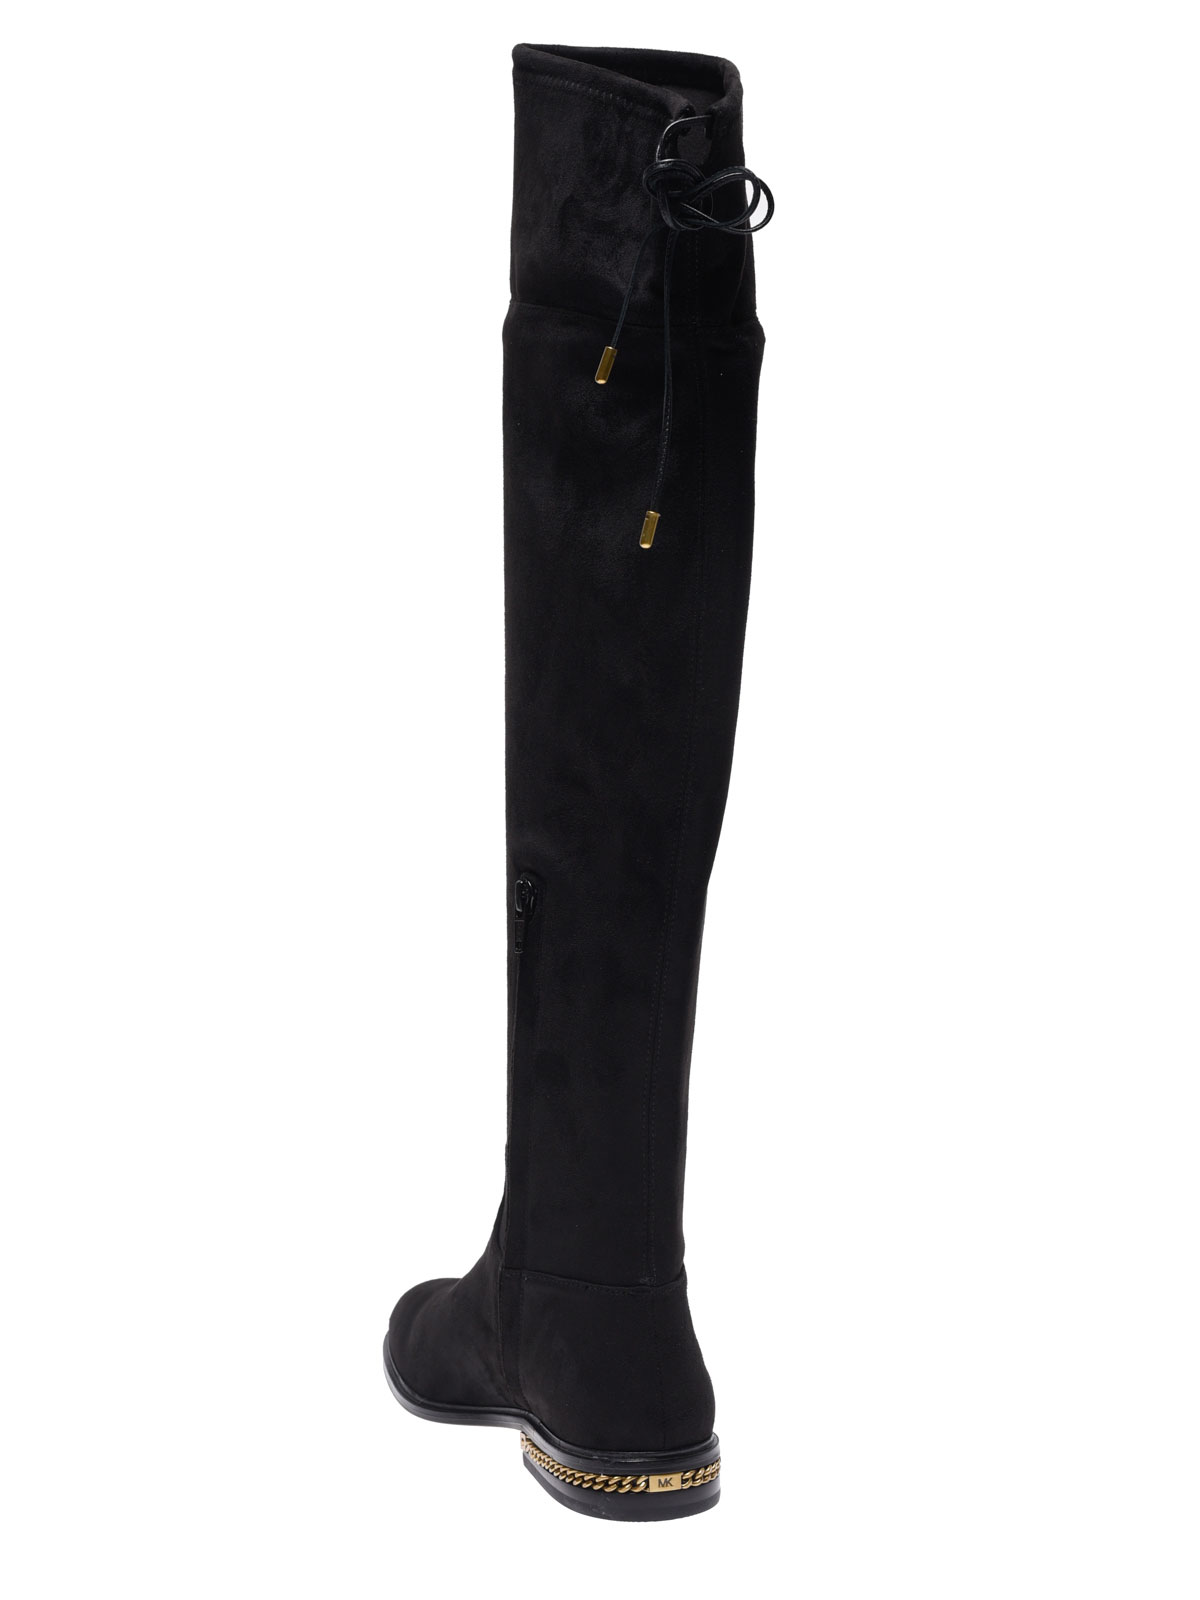 a8295122b65 Michael Kors - Jamie stretch suede boots - boots - 40F8JMFB5S 001